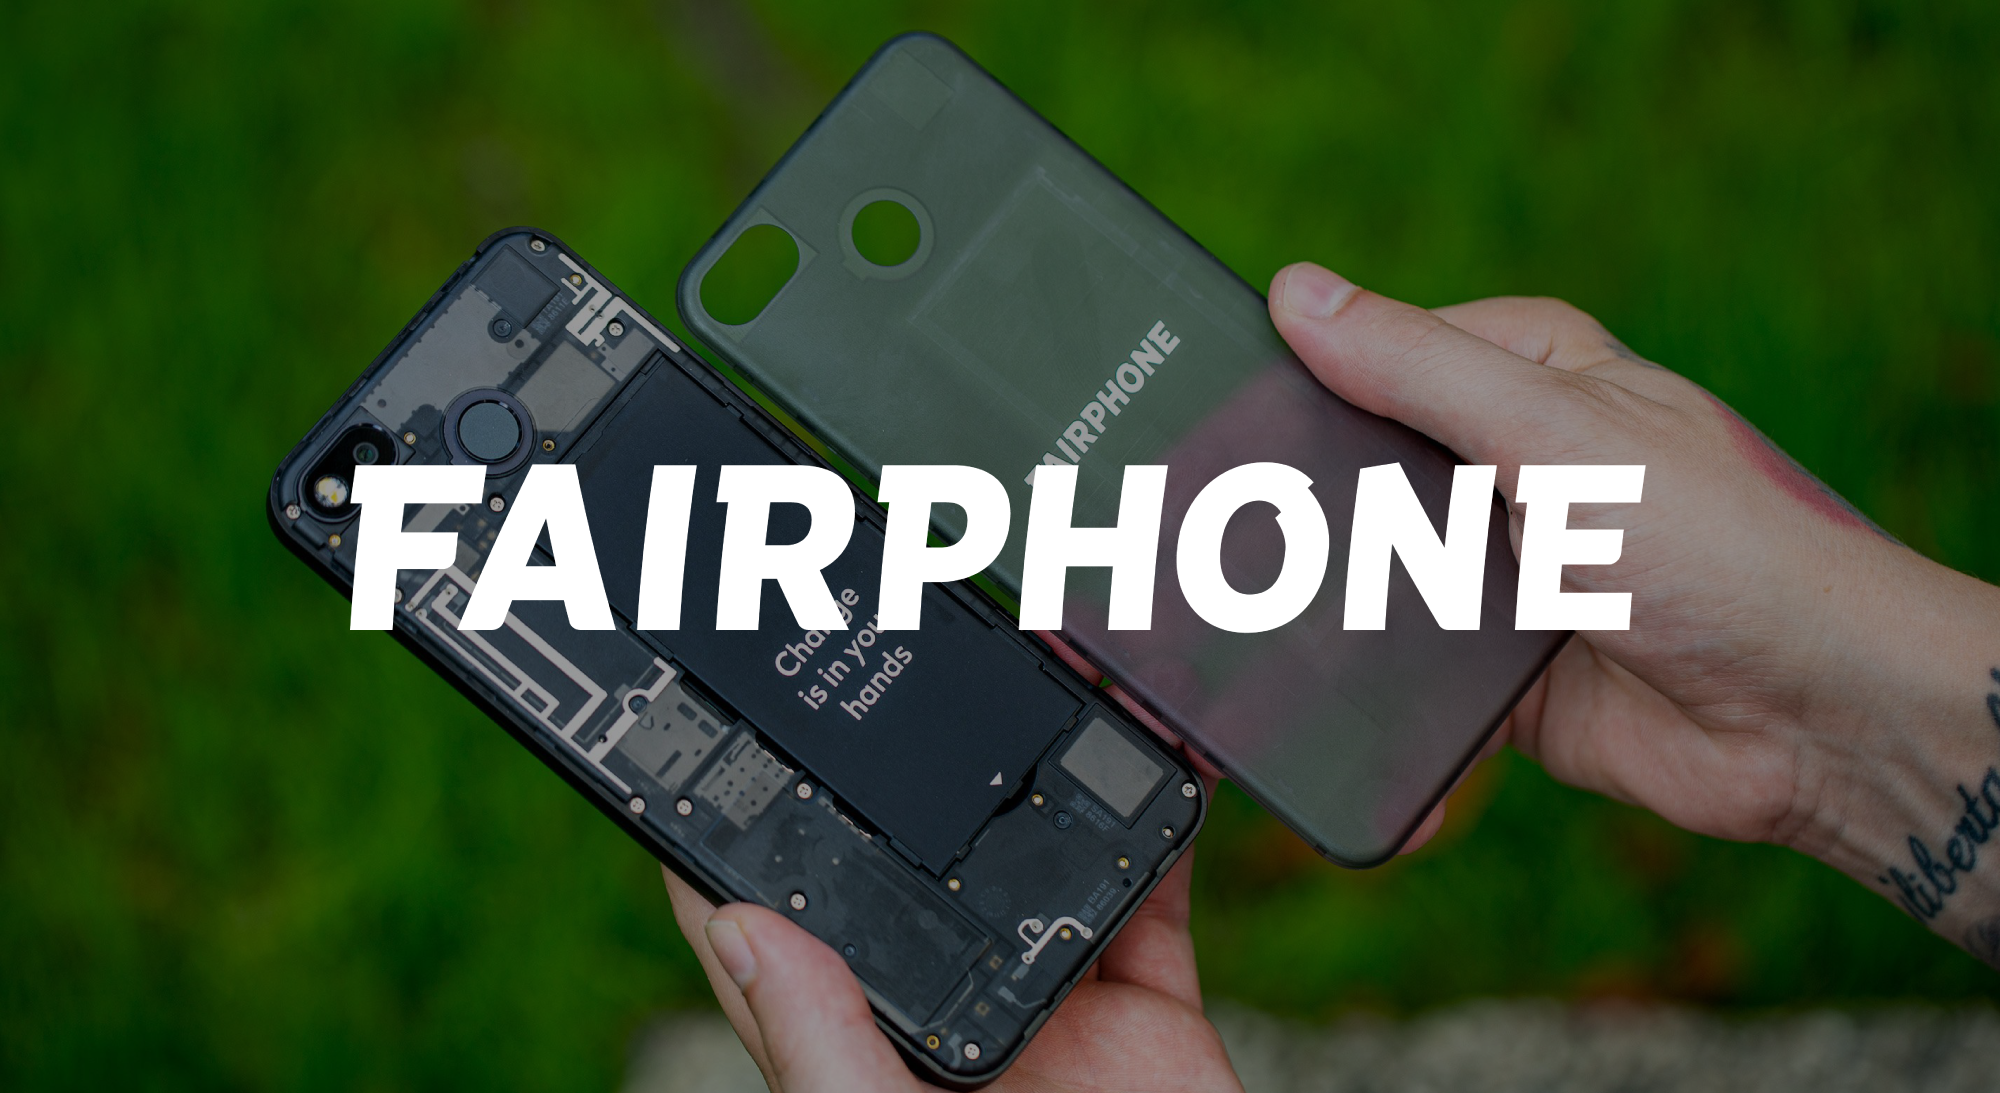 Fairphone is one of the 125+ impact scale-ups have completed our programs